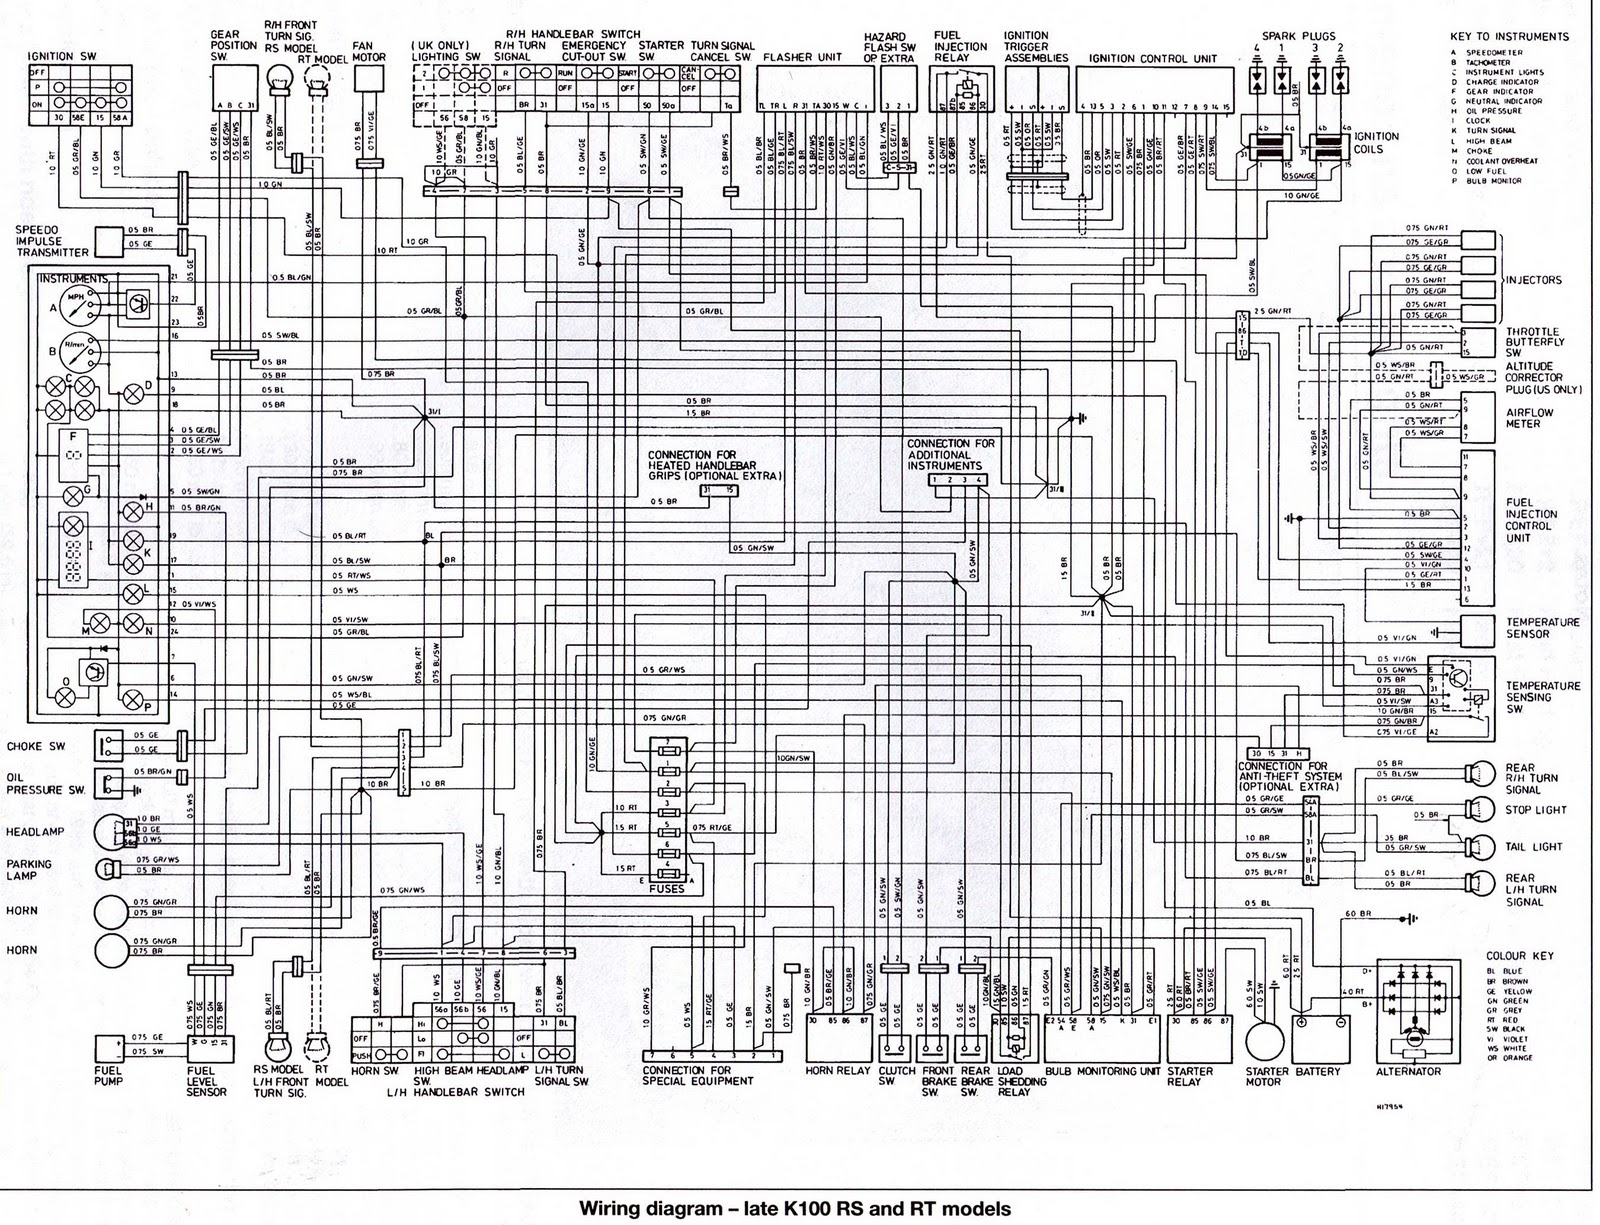 3D355E6 Bmw E39 Wiring Diagram Free Download | Wiring ResourcesWiring Resources